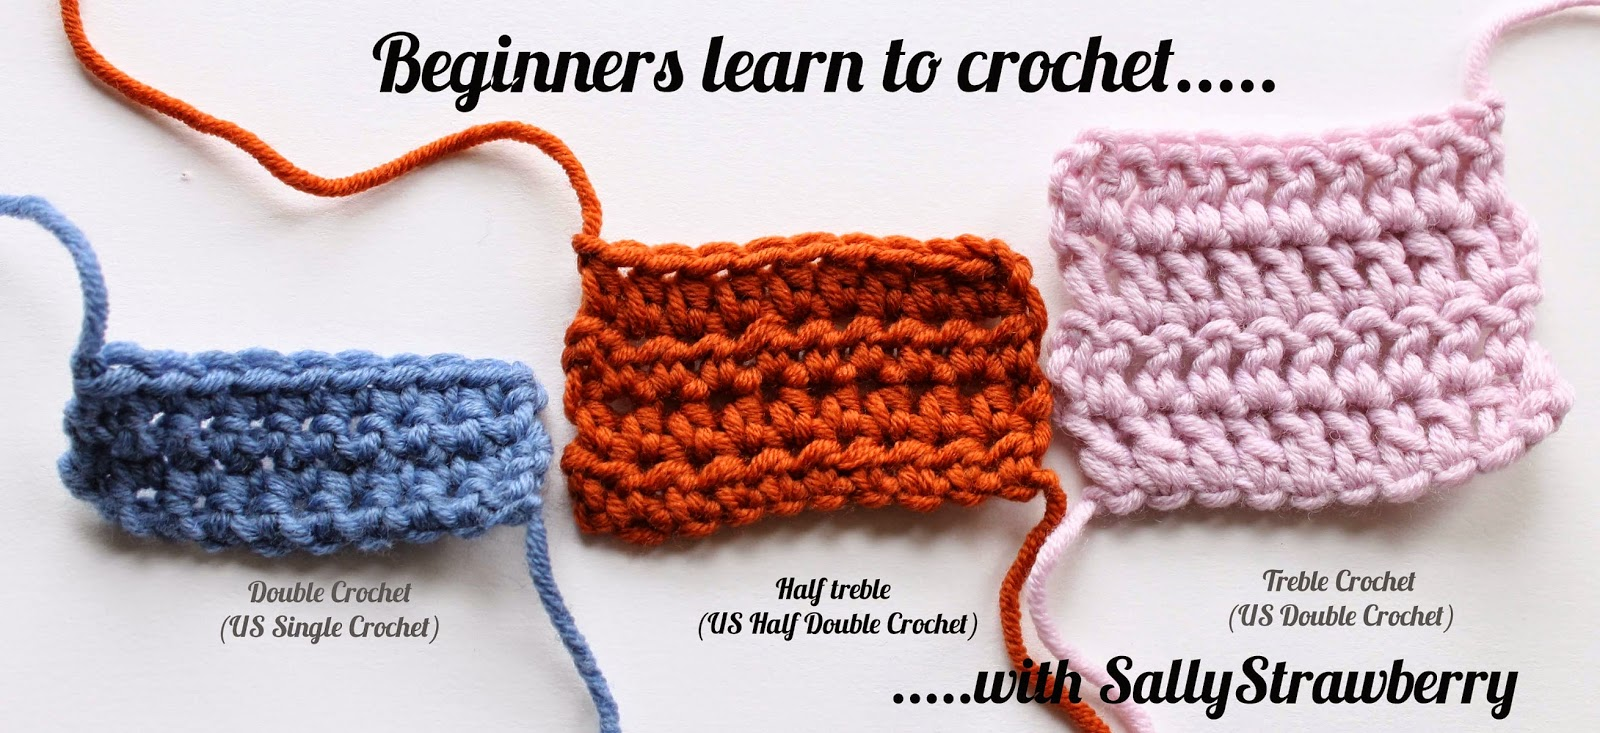 Crochet Stitches Uk Treble : SallyStrawberry: Beginners learn to crochet: Half-treble crochet